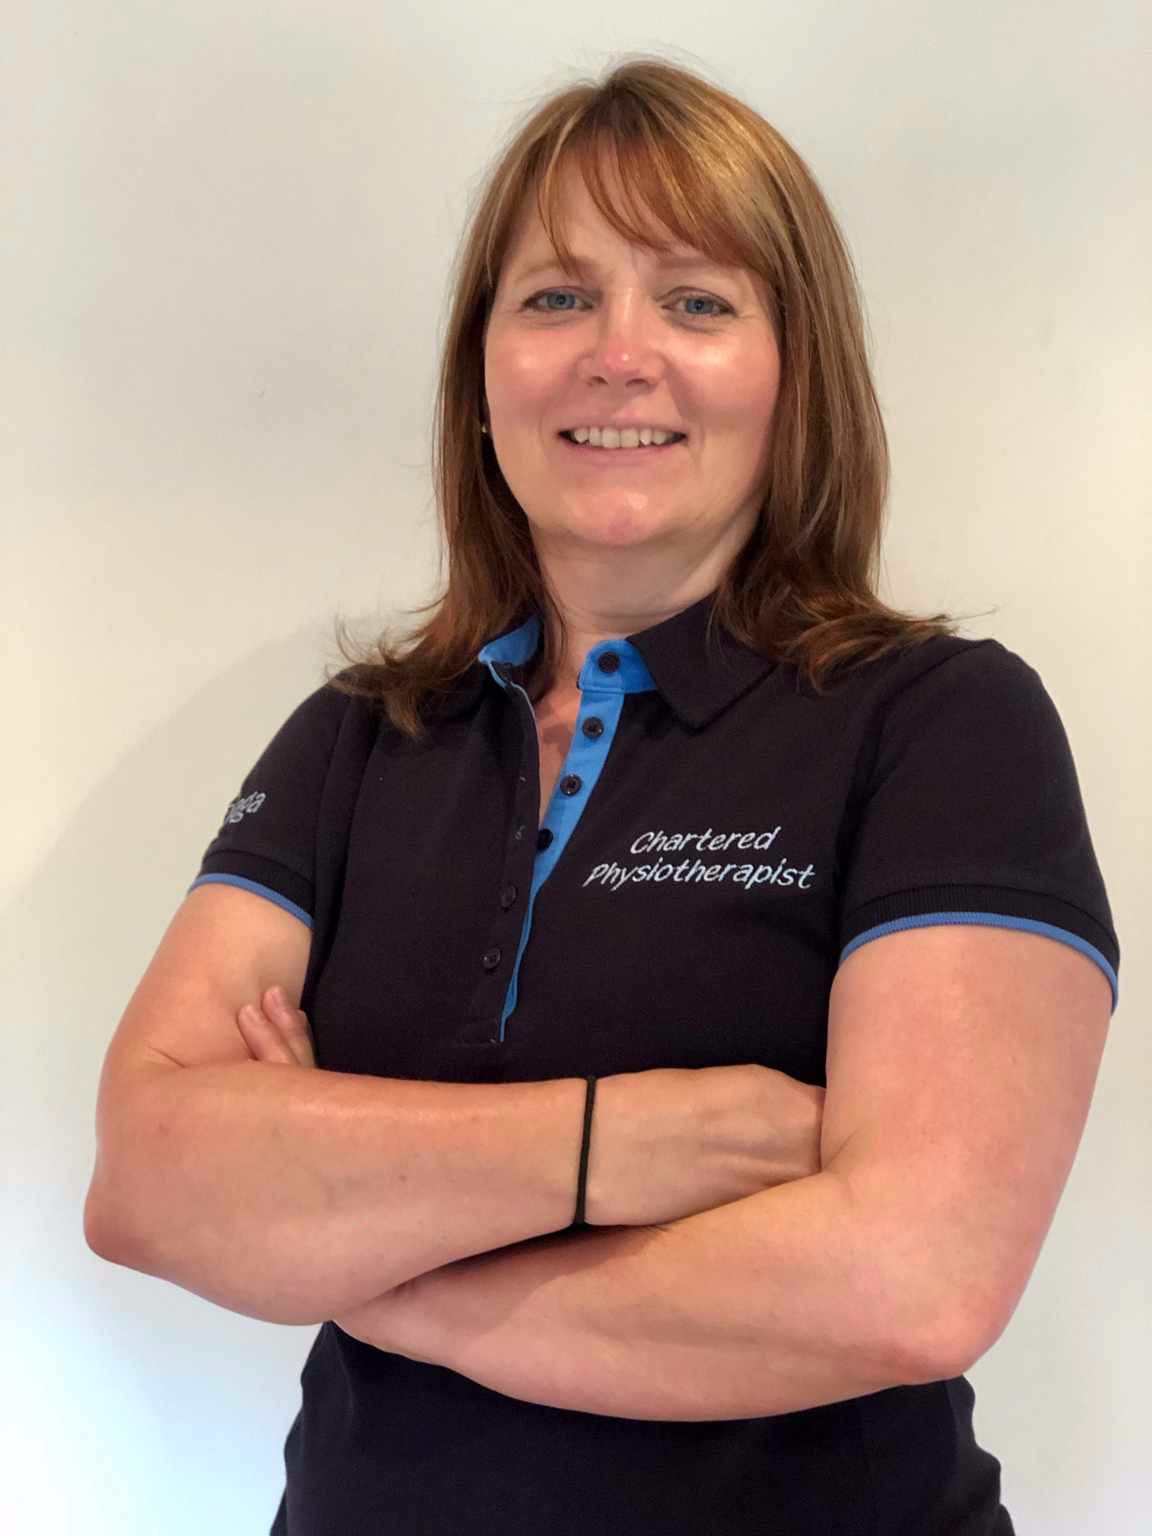 Helen Talaga, Chartered Physiotherapist